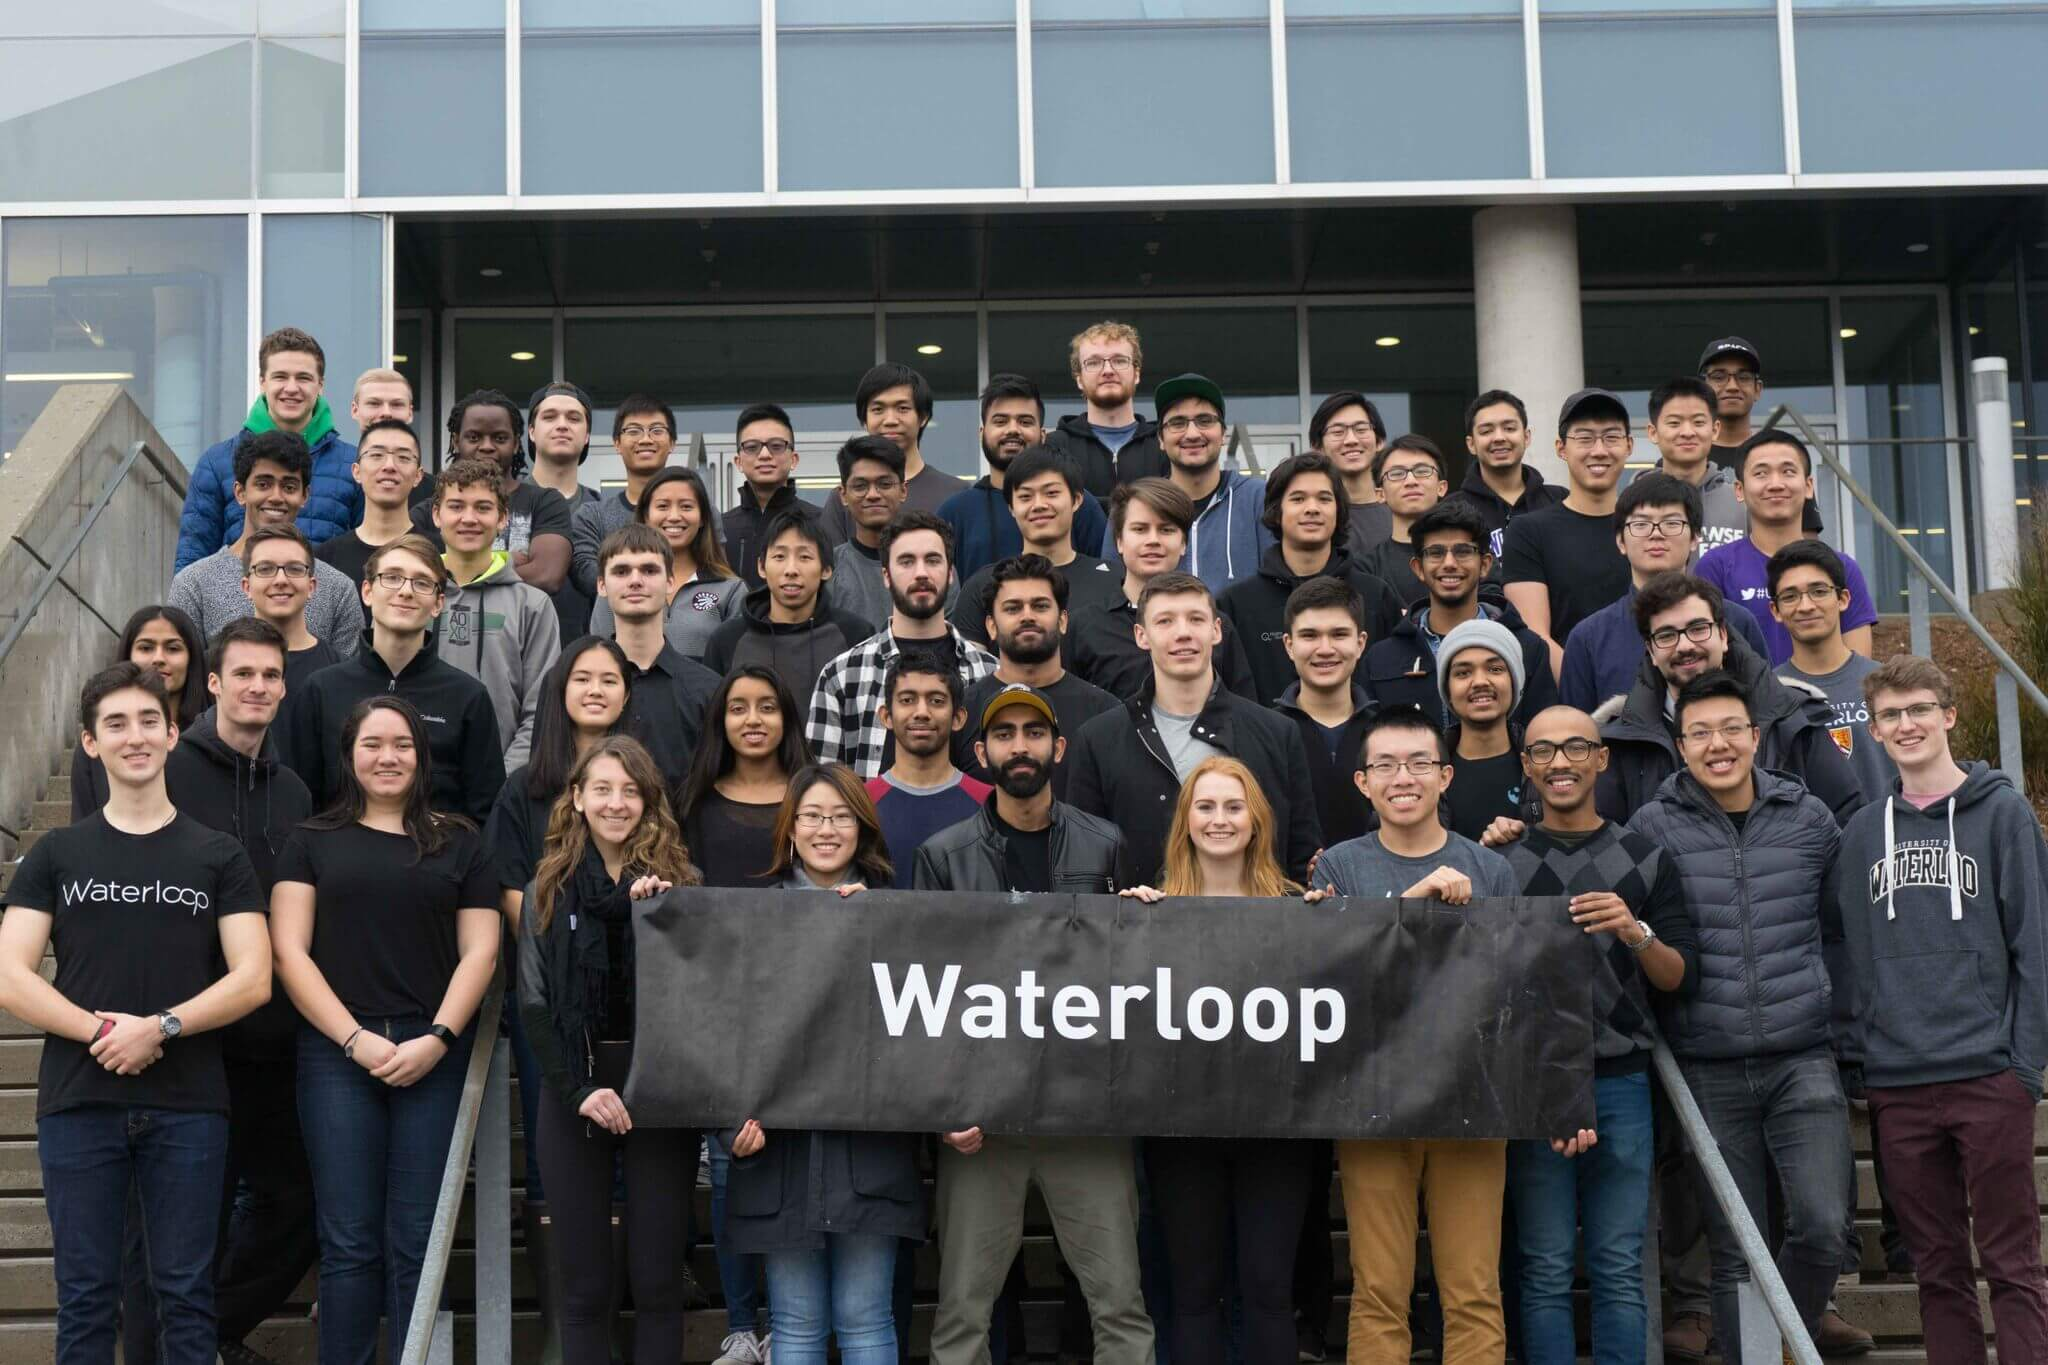 Waterloop team